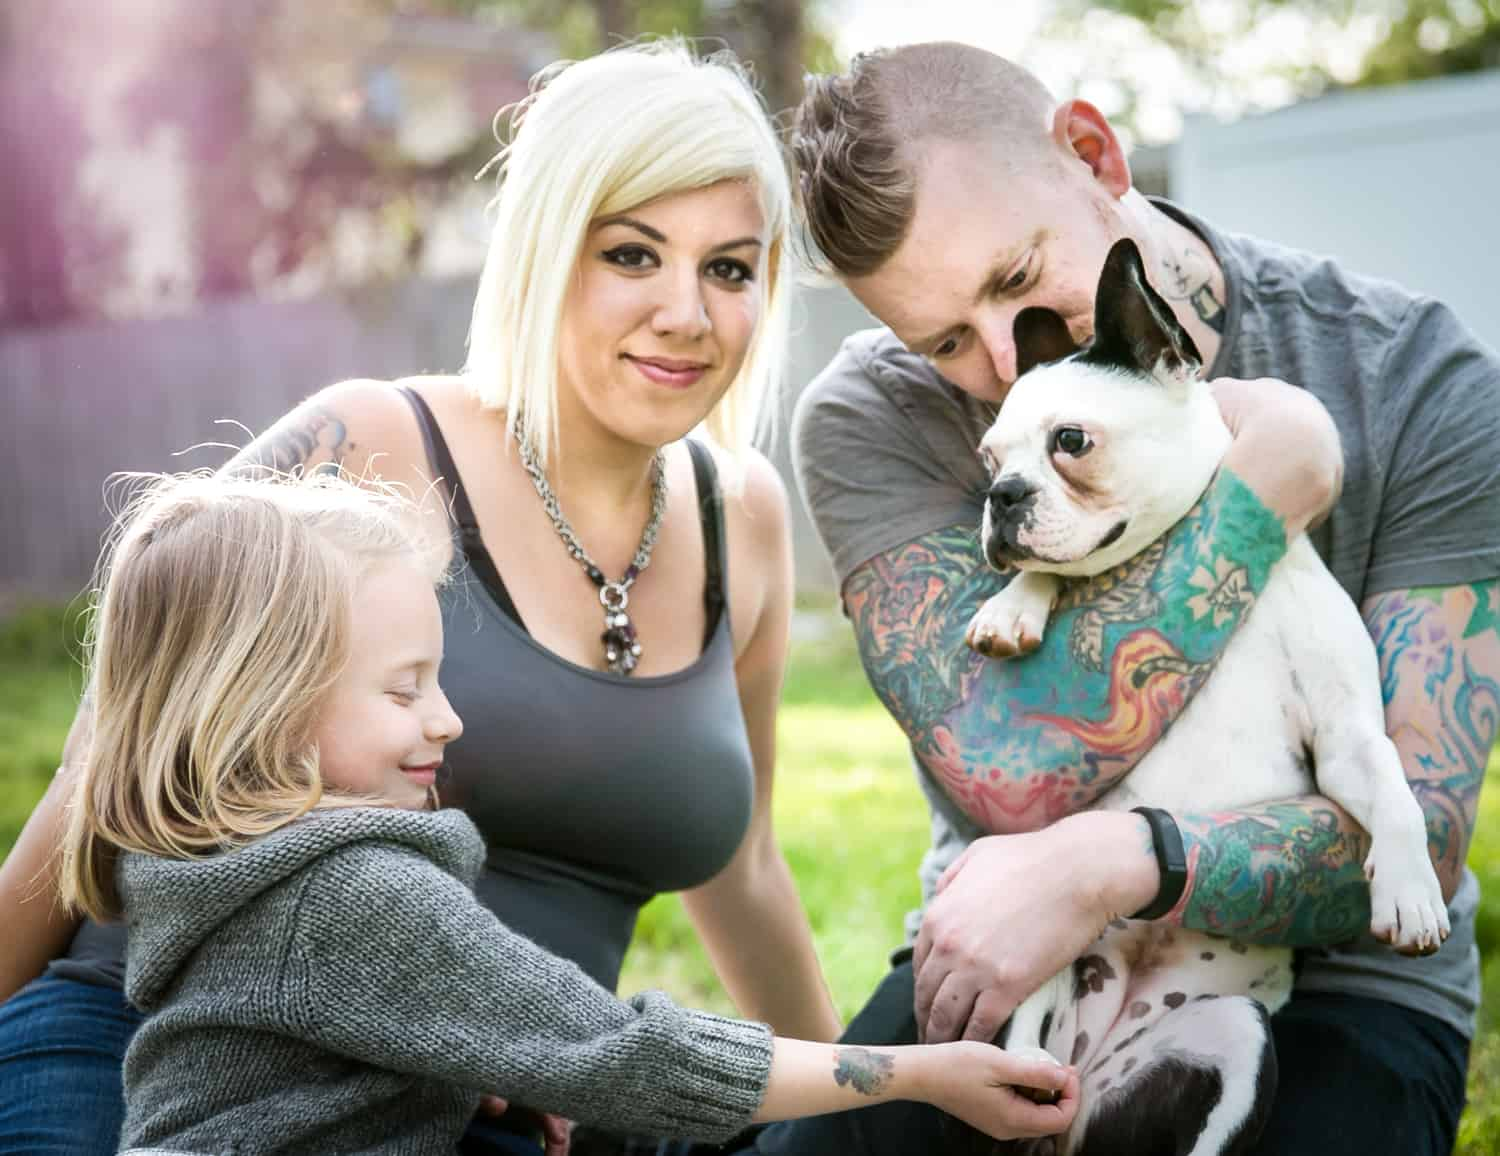 Pregnant woman, man, young girl and dog in backyard